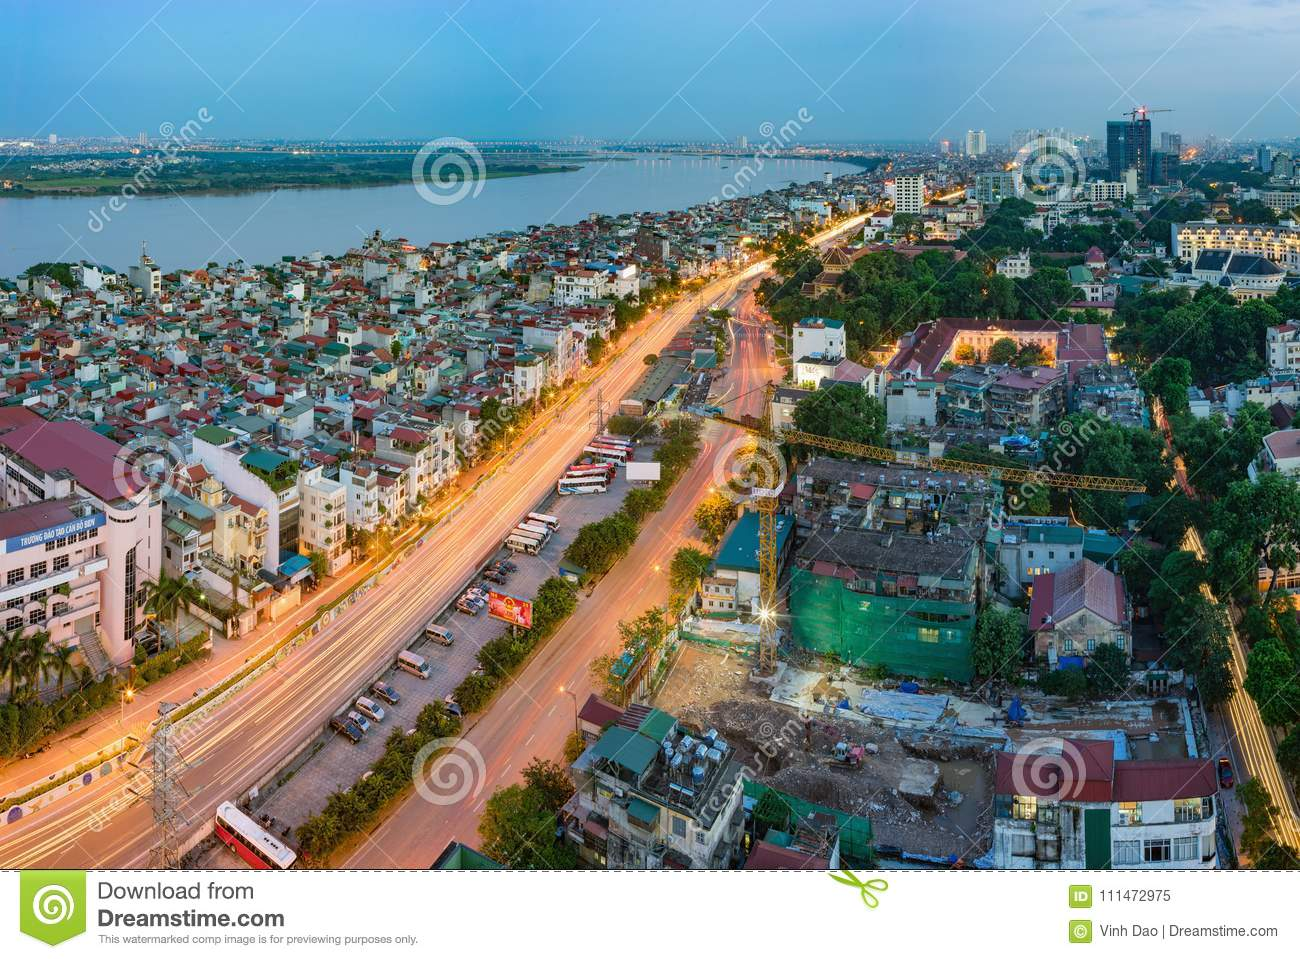 Hanoi, Vietnam - Sep 19, 2015: Aerial skyline view of Nguyen Khoai street with Vinh Tuy bridge crossing Red River on background. H